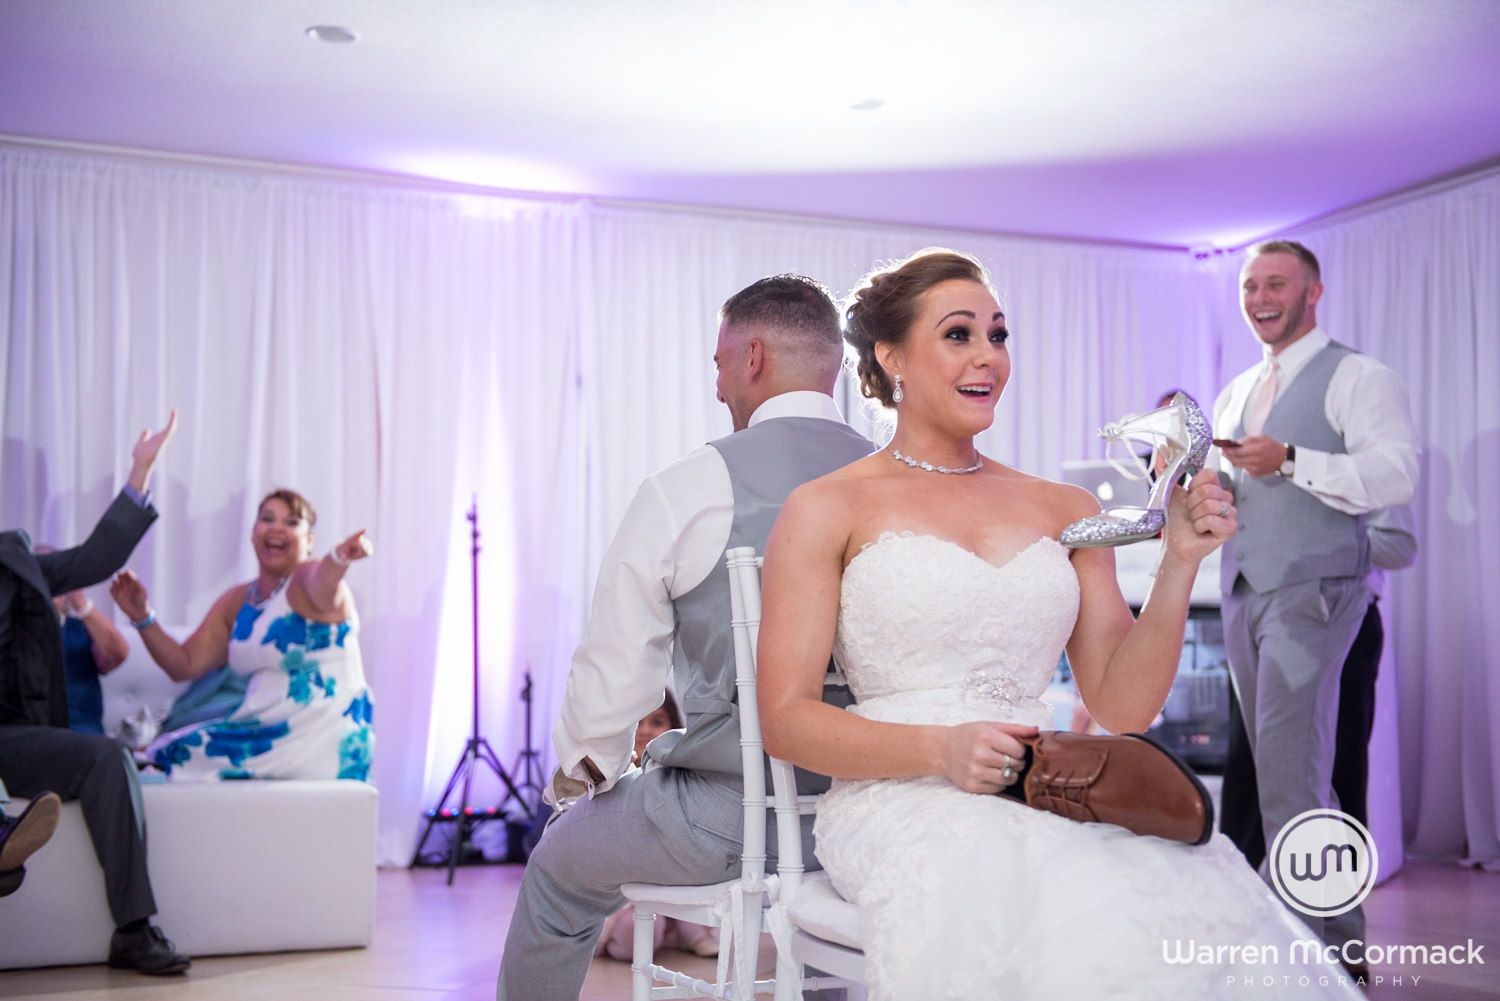 Logan's Place Miami Wedding - Warren McCormack Photographer49.jpg